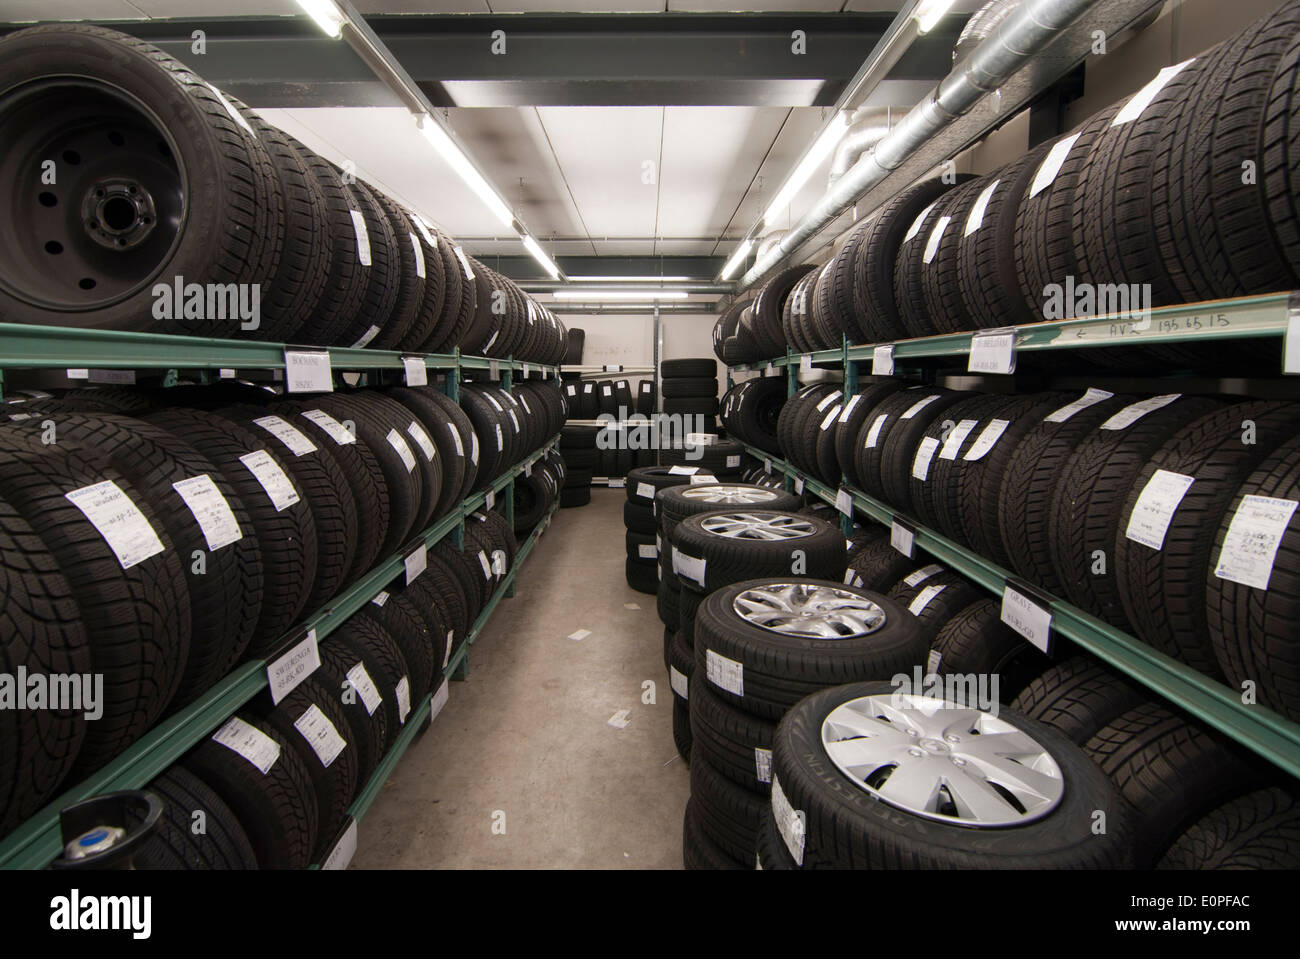 storage space for car tires - Stock Image